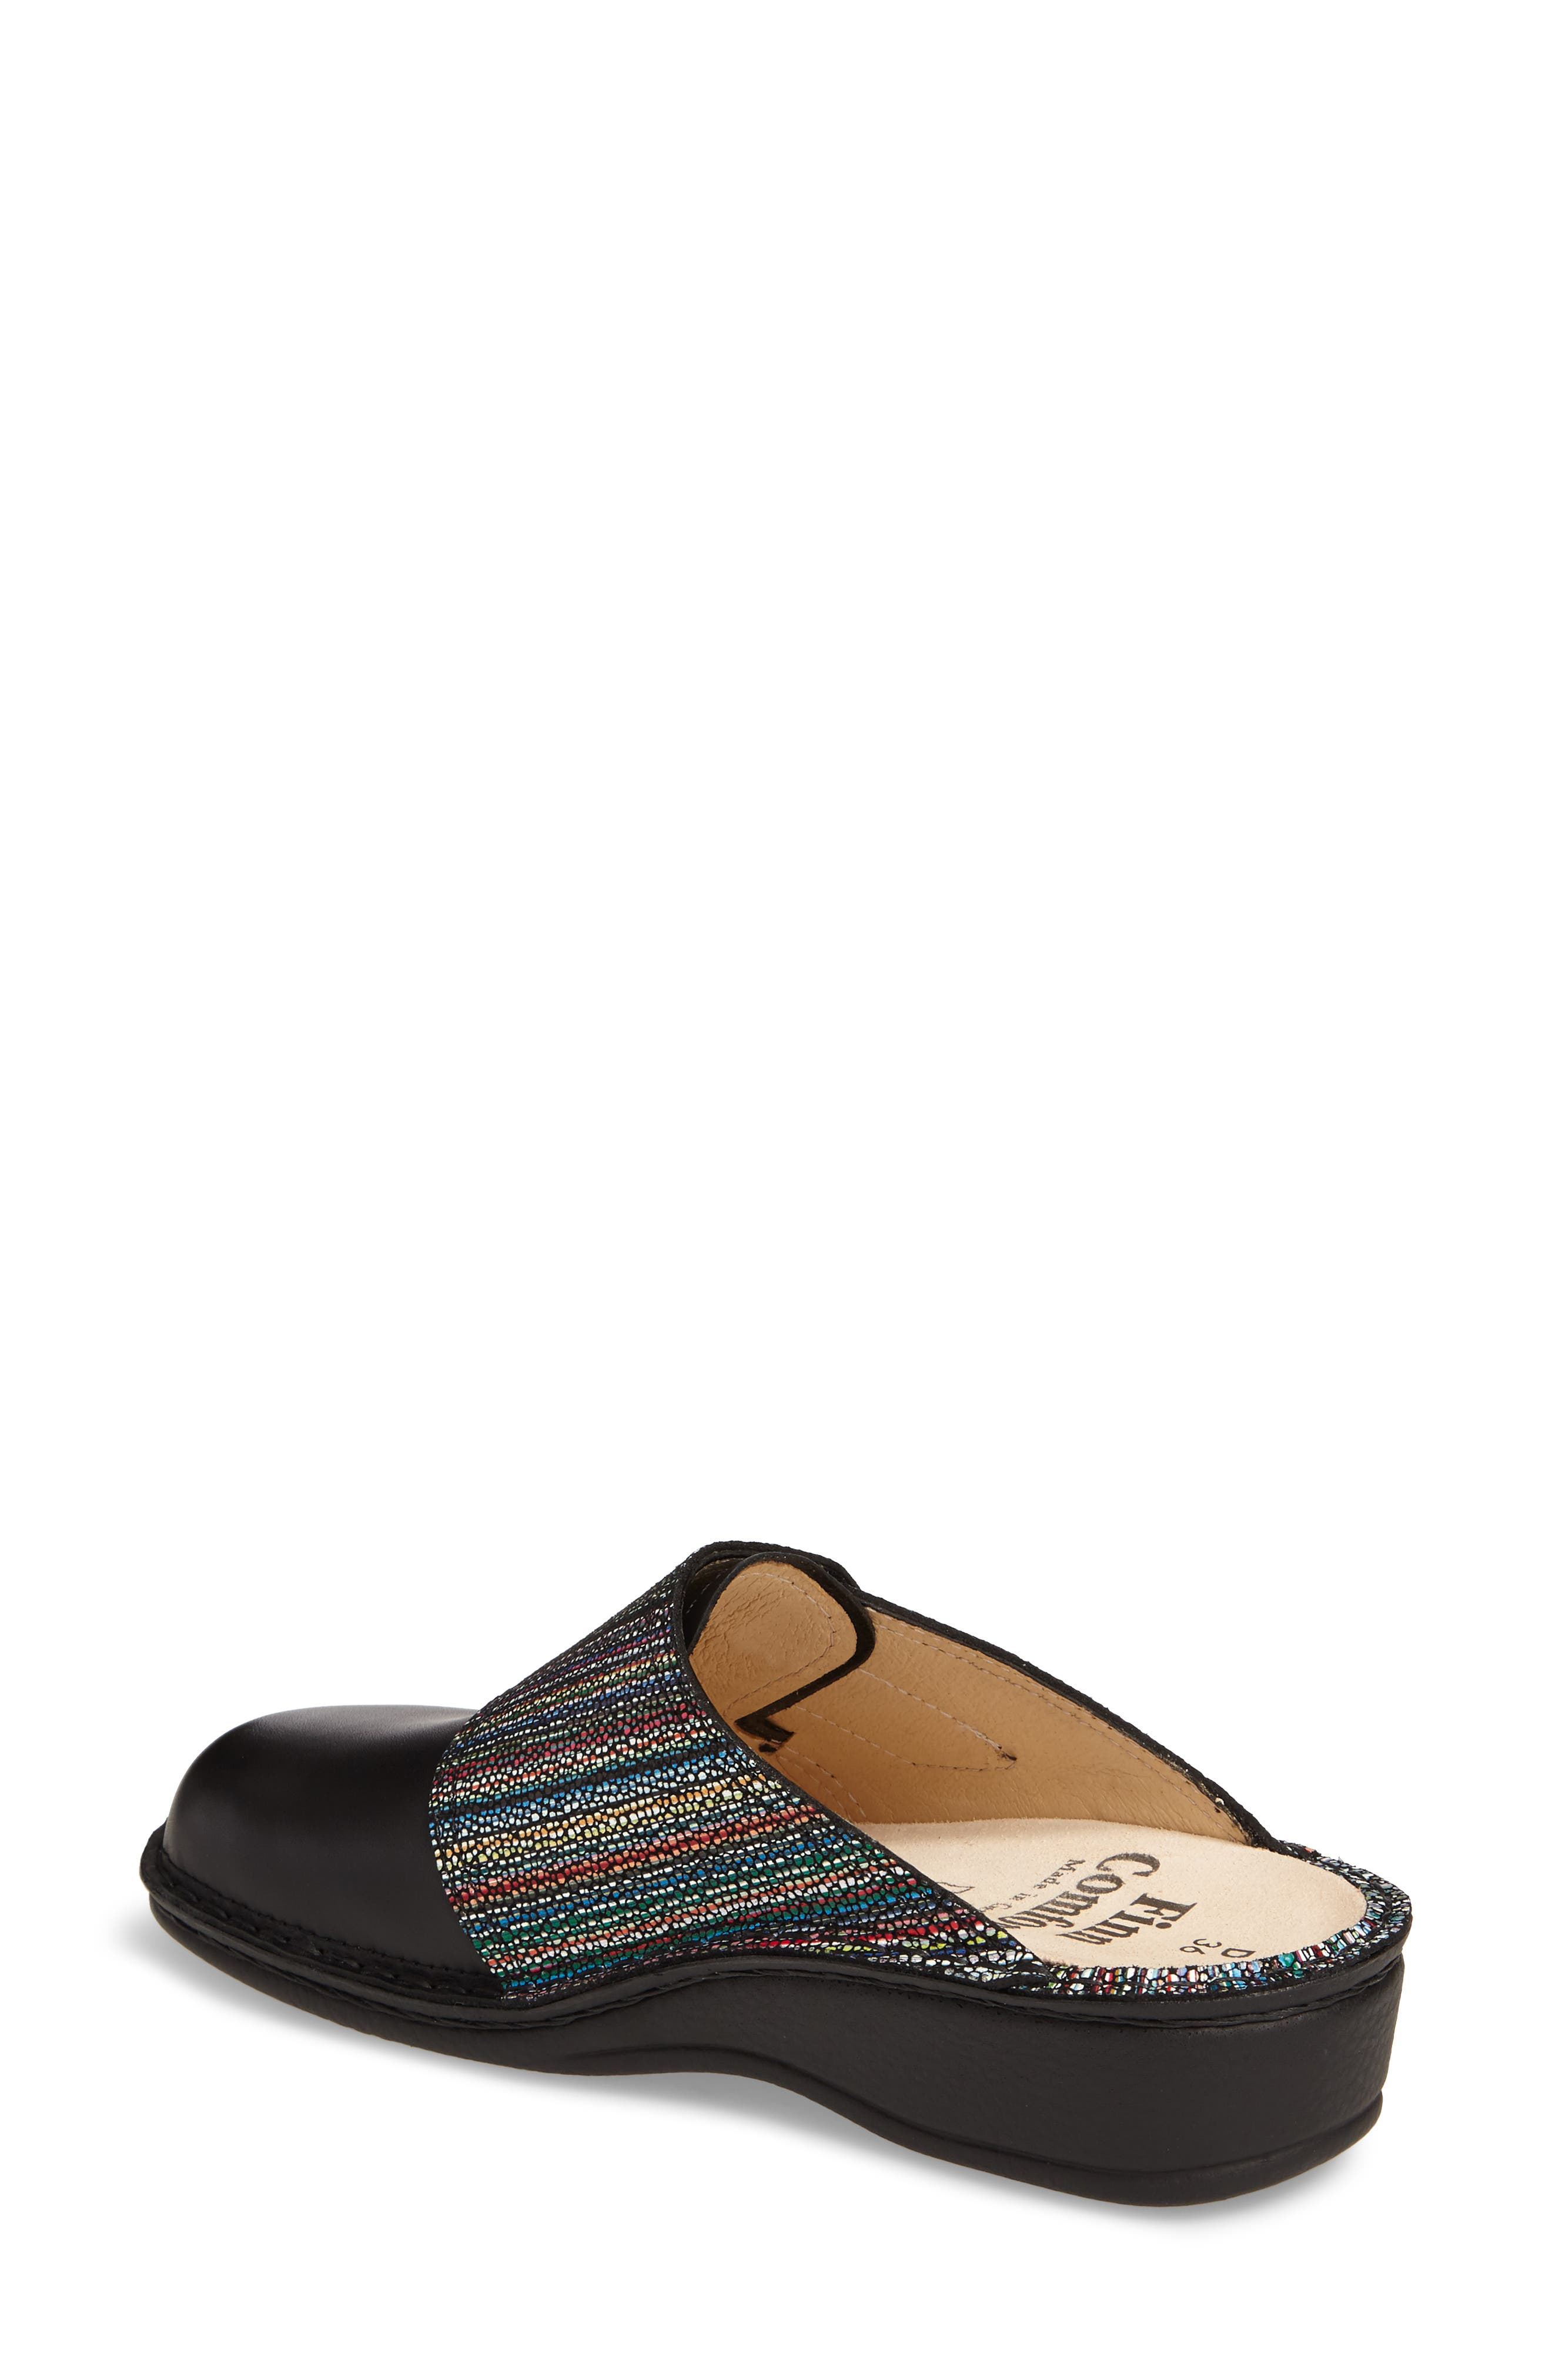 Alternate Image 2  - Finn Comfort Aussee Clog (Women)